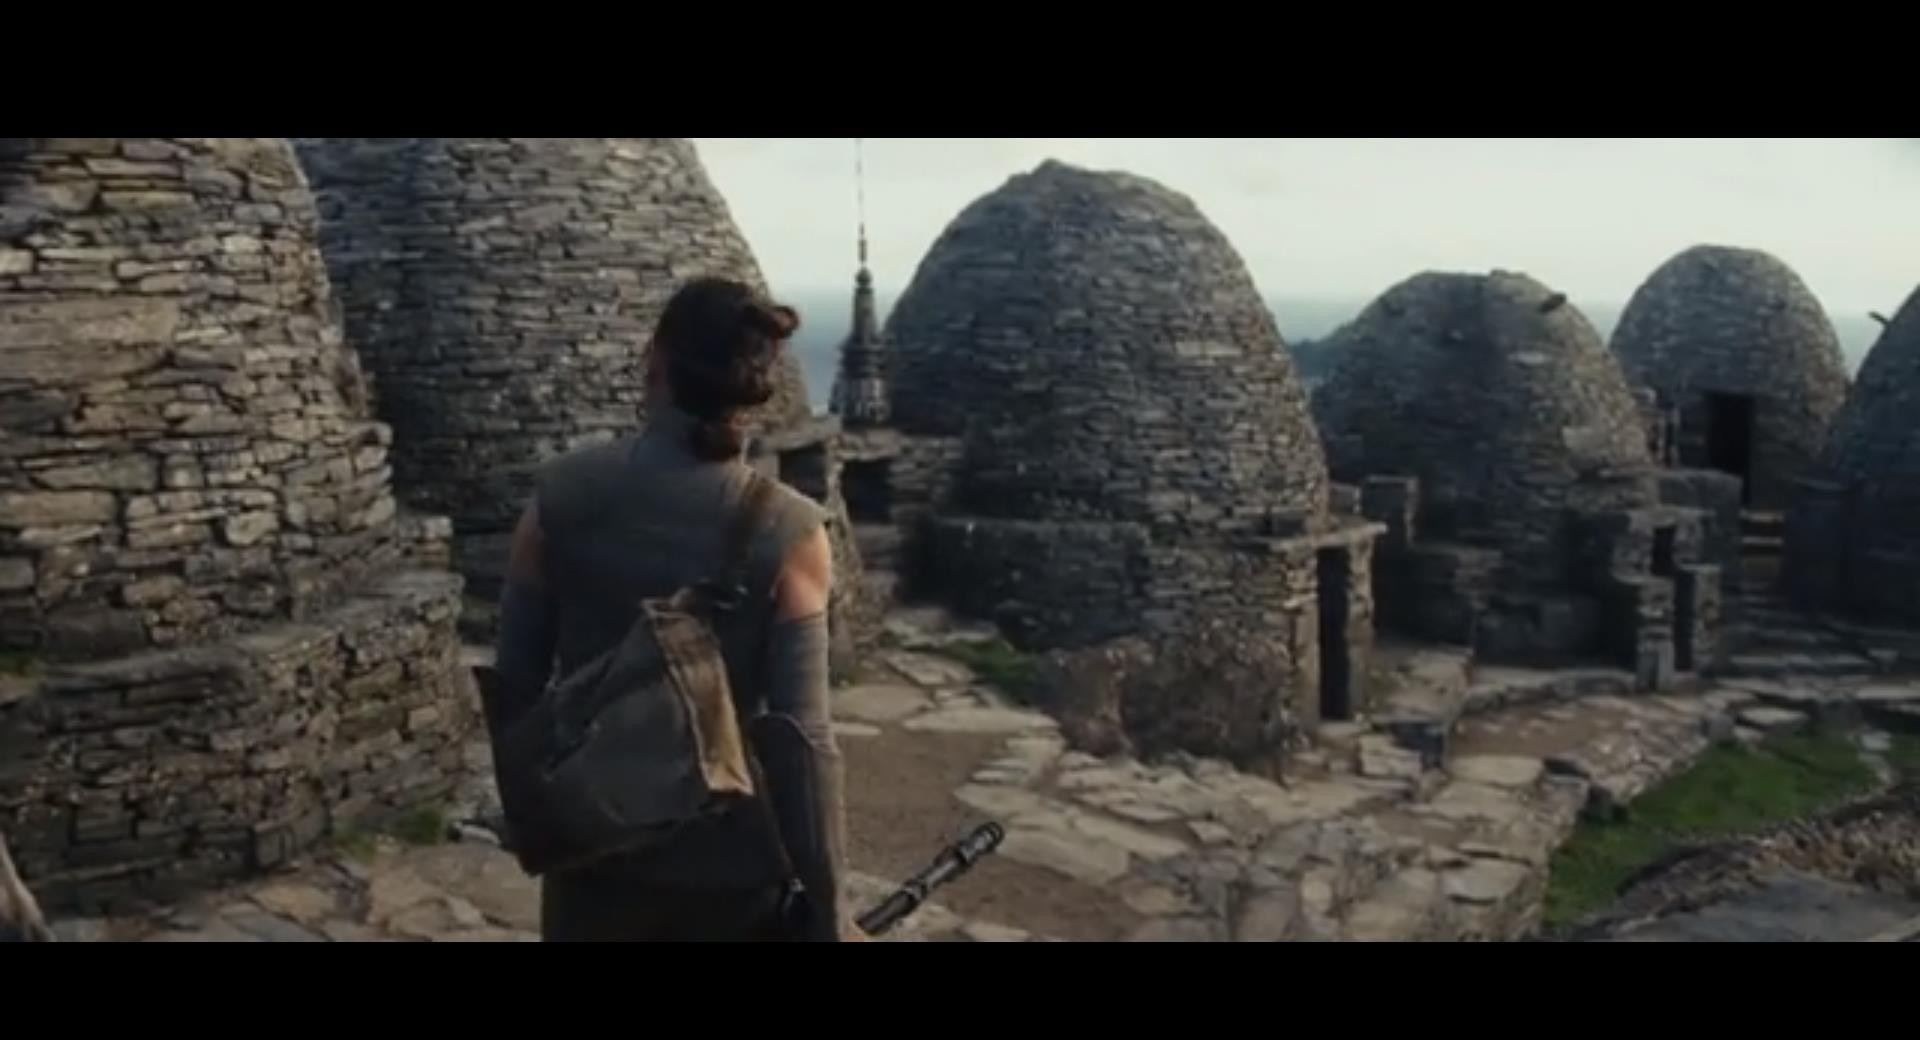 Star Wars in Ceann Sibéal Screenshot from the movie